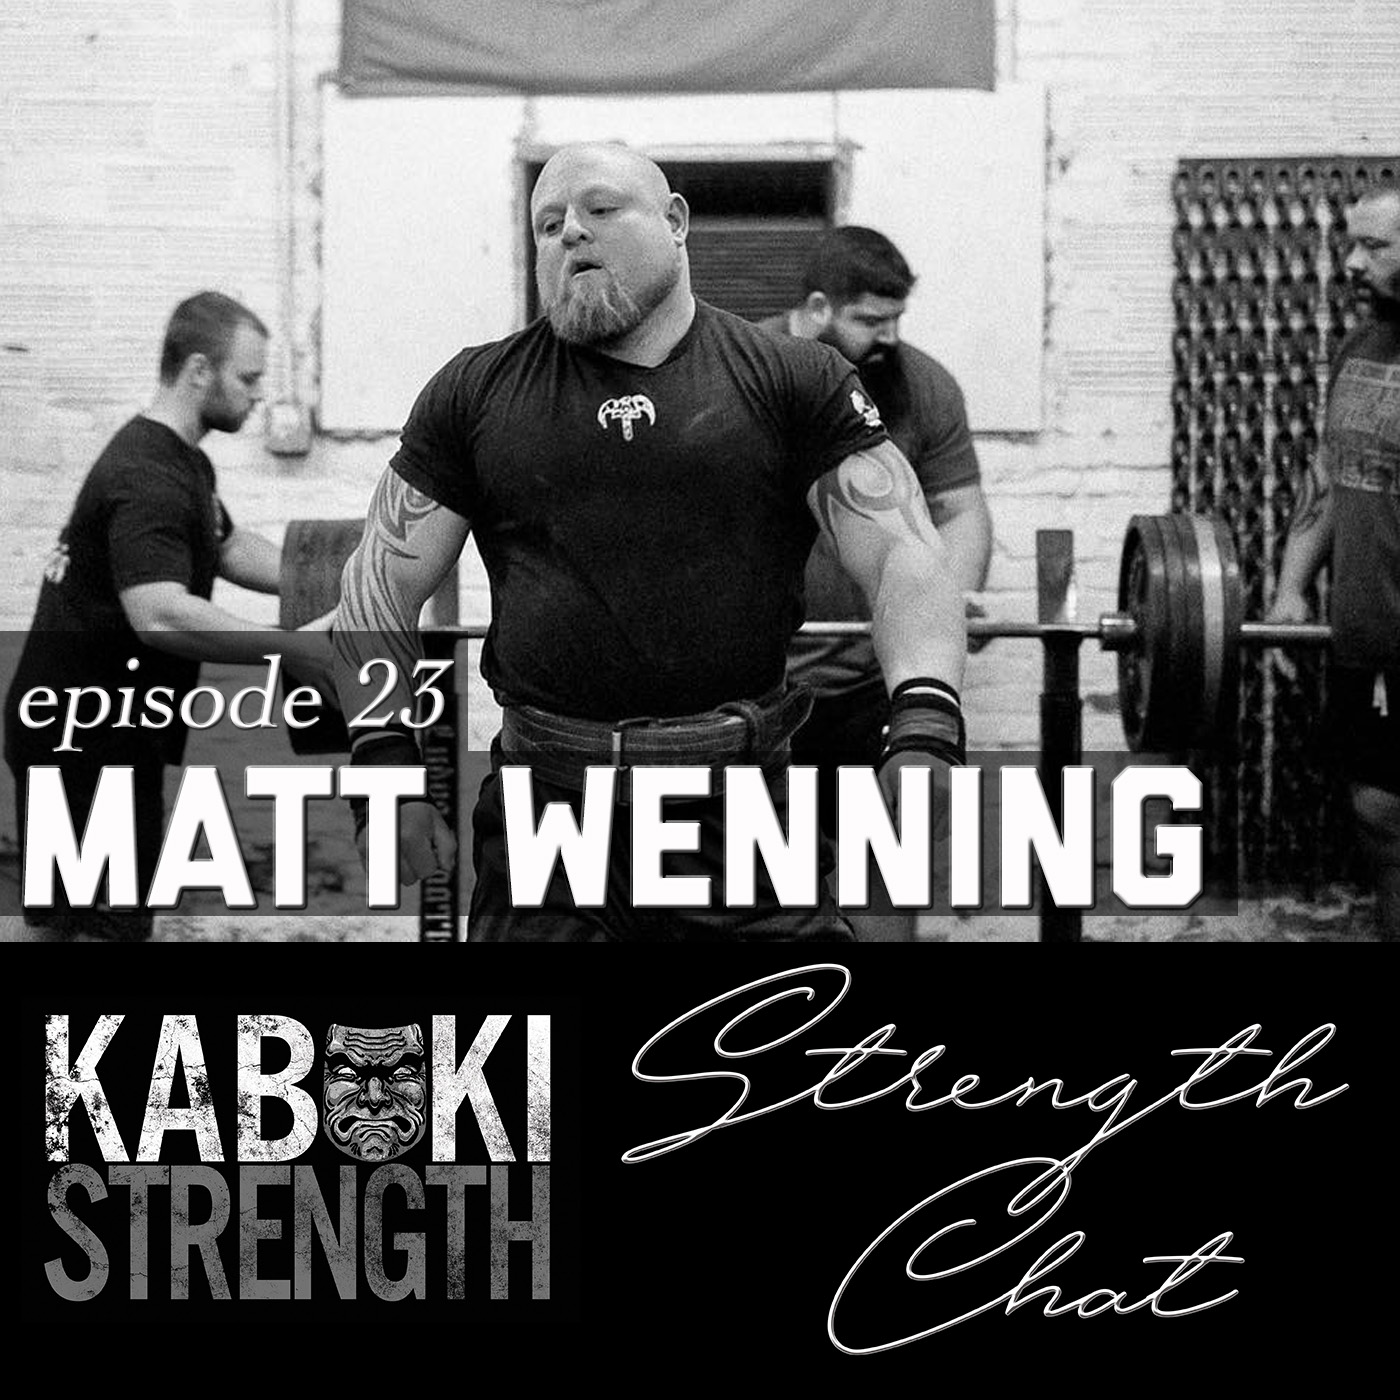 Best Episodes of Strength Chat by Kabuki Strength